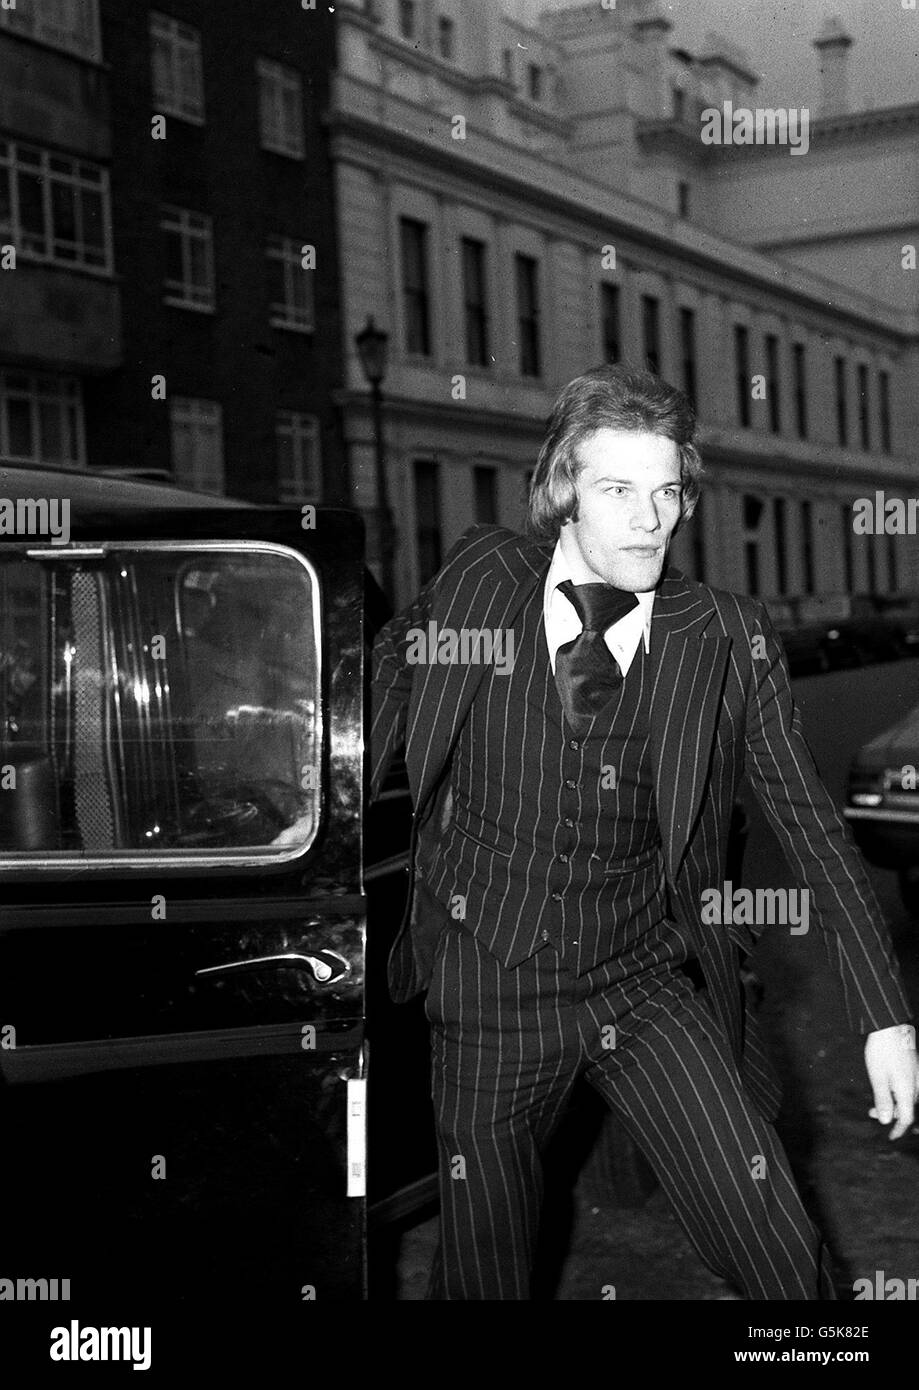 Andy Gray misconduct hearing : 1977 - Stock Image